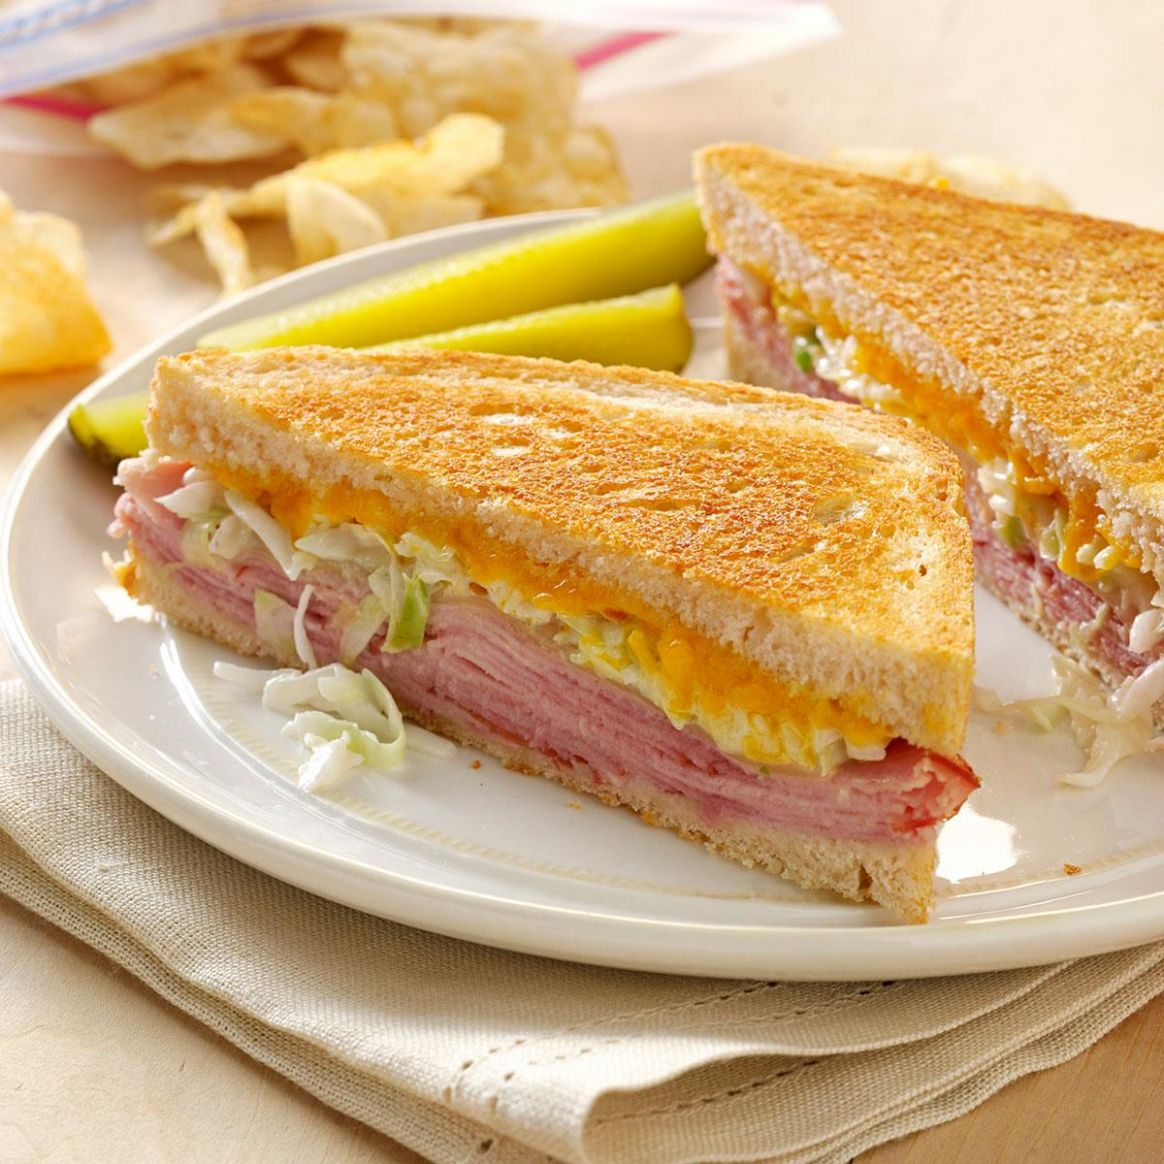 Zesty Grilled Sandwiches - Sandwich Recipes Grilled